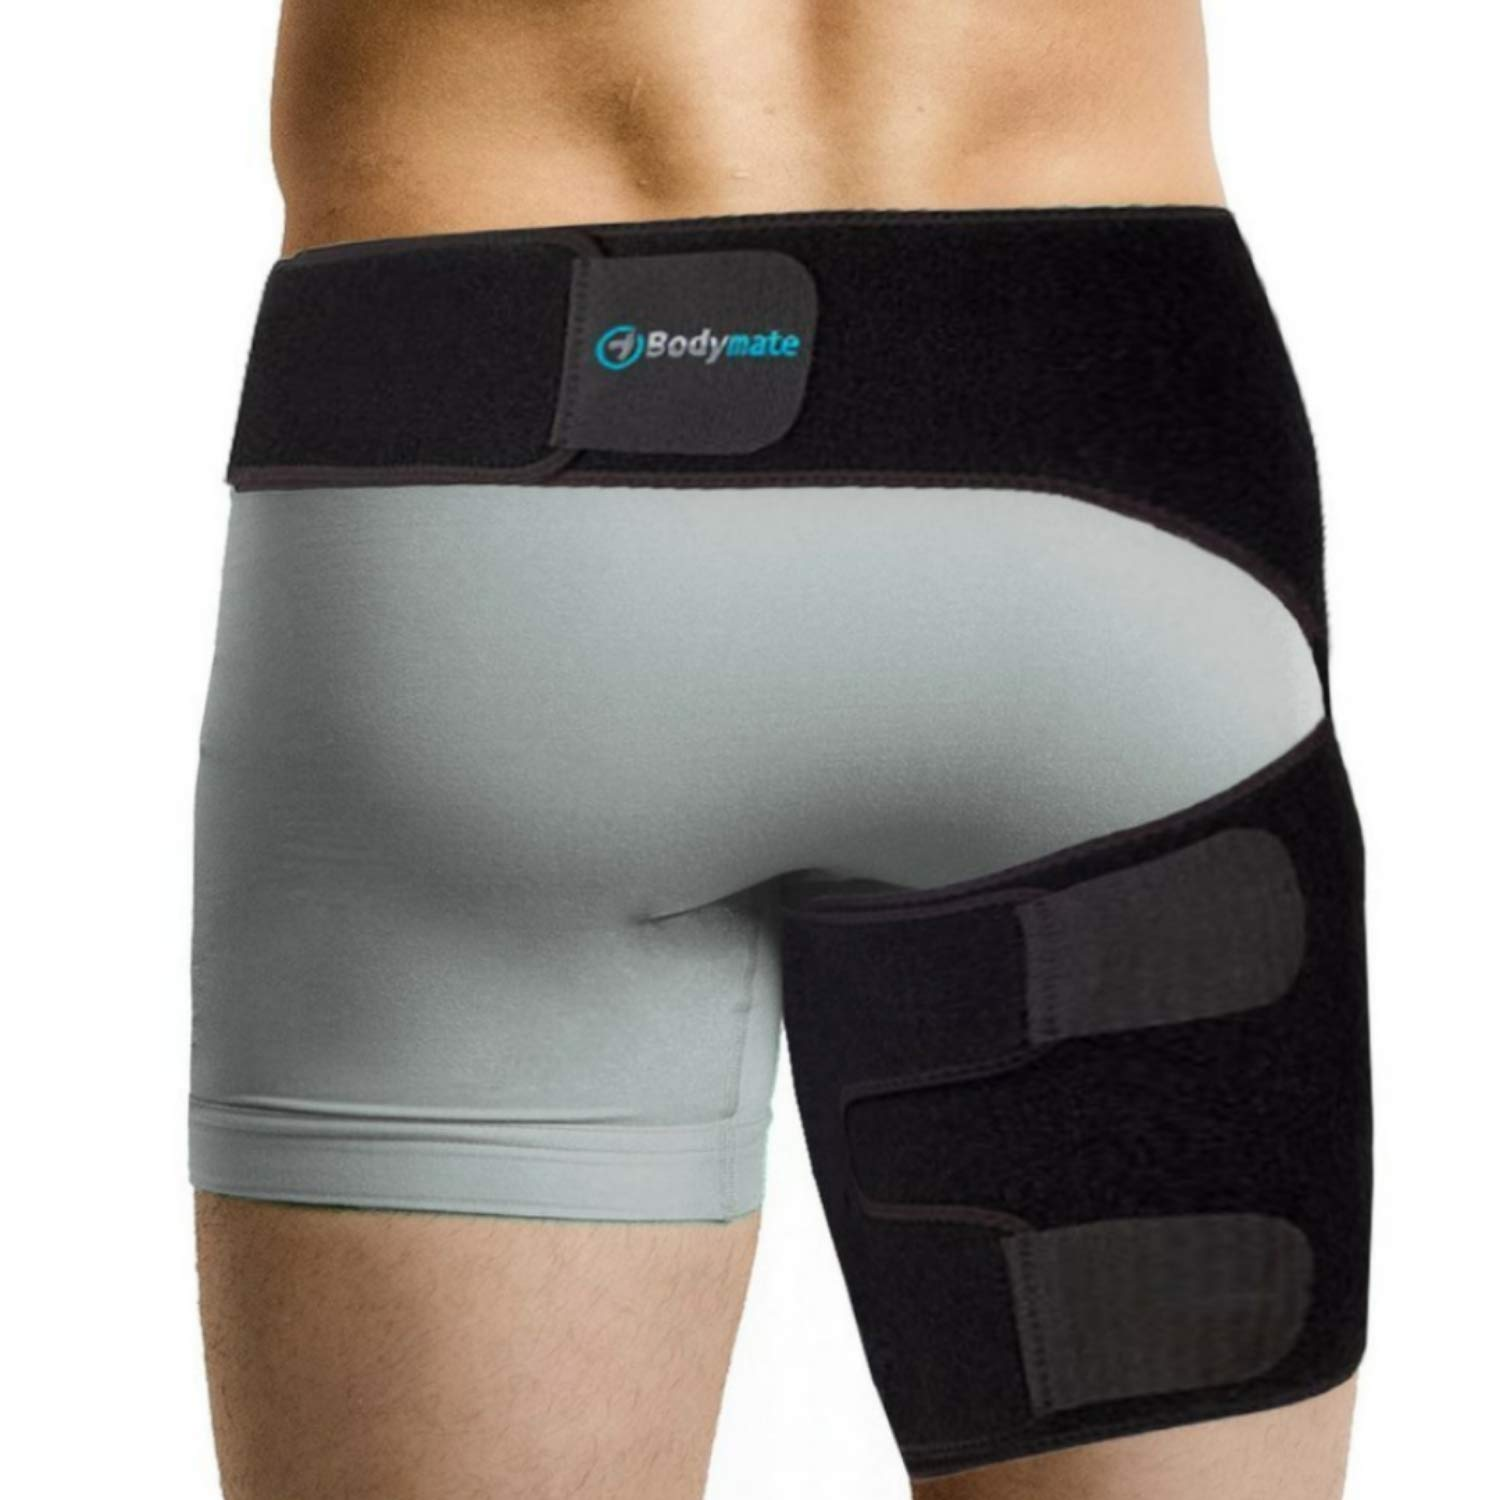 BODYMATE Compression Brace for Hip, Sciatica Nerve Pain Relief Thigh Hamstring, Quadriceps, Joints, Arthritis, Groin Wrap for Pulled Muscles, Hip Strap, Sciatica Brace/SI Belt for Men, Women by BODYMATE